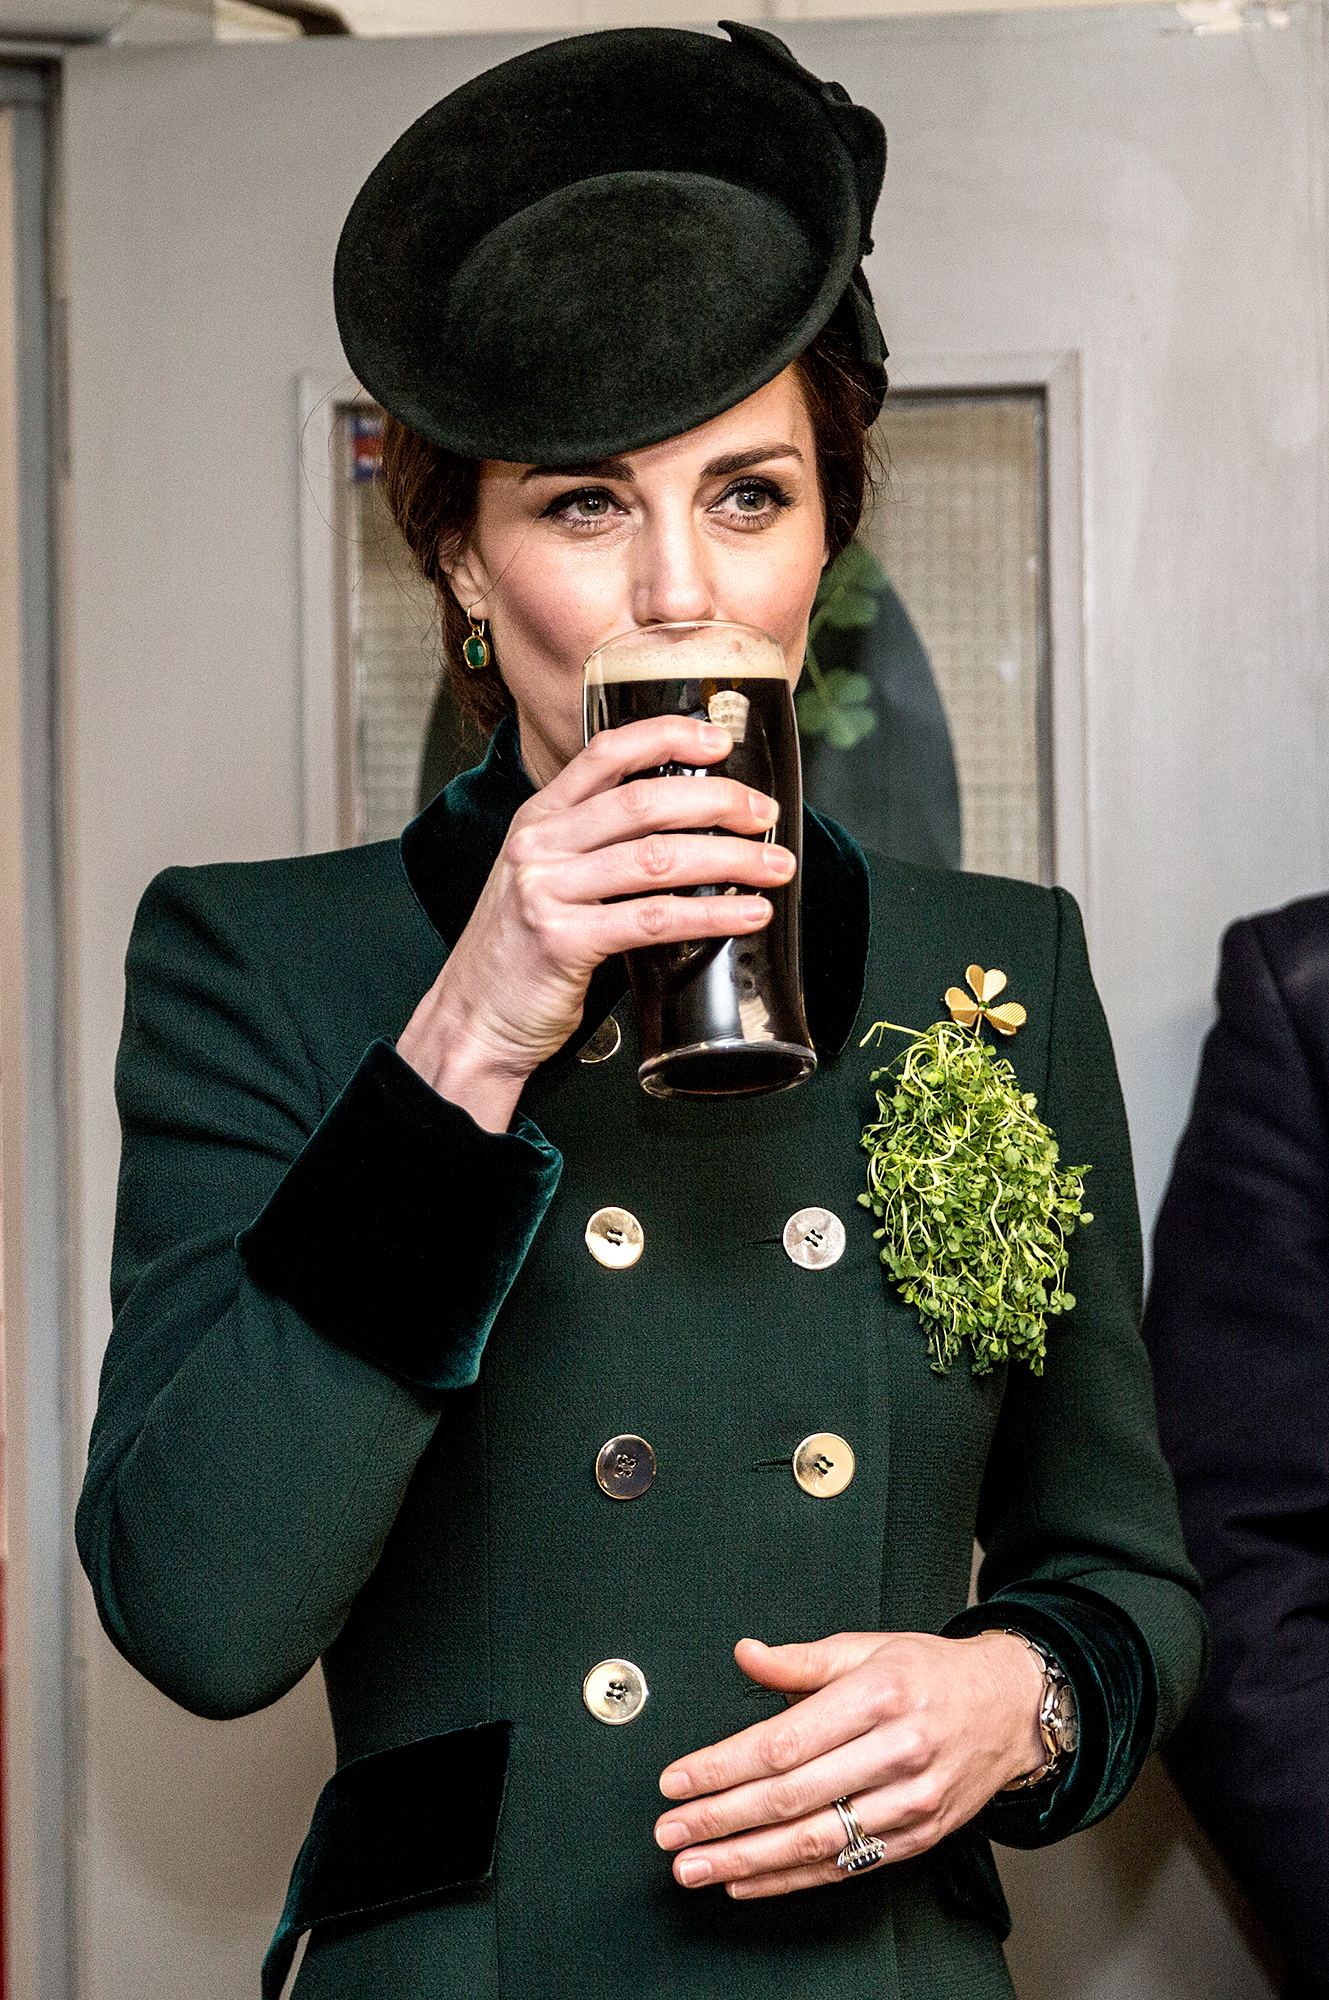 Dressed-in-Green-and-Drinking-a-Guinness--duchess-kate - She may not be Irish, but Kate certainly knows how to look and dress the part. In March 2017, the royal took a drink of Guinness as she met with soldiers of the first battalion Irish Guards in their canteen following their St. Patrick's day parade at Cavalry Barracks in London.